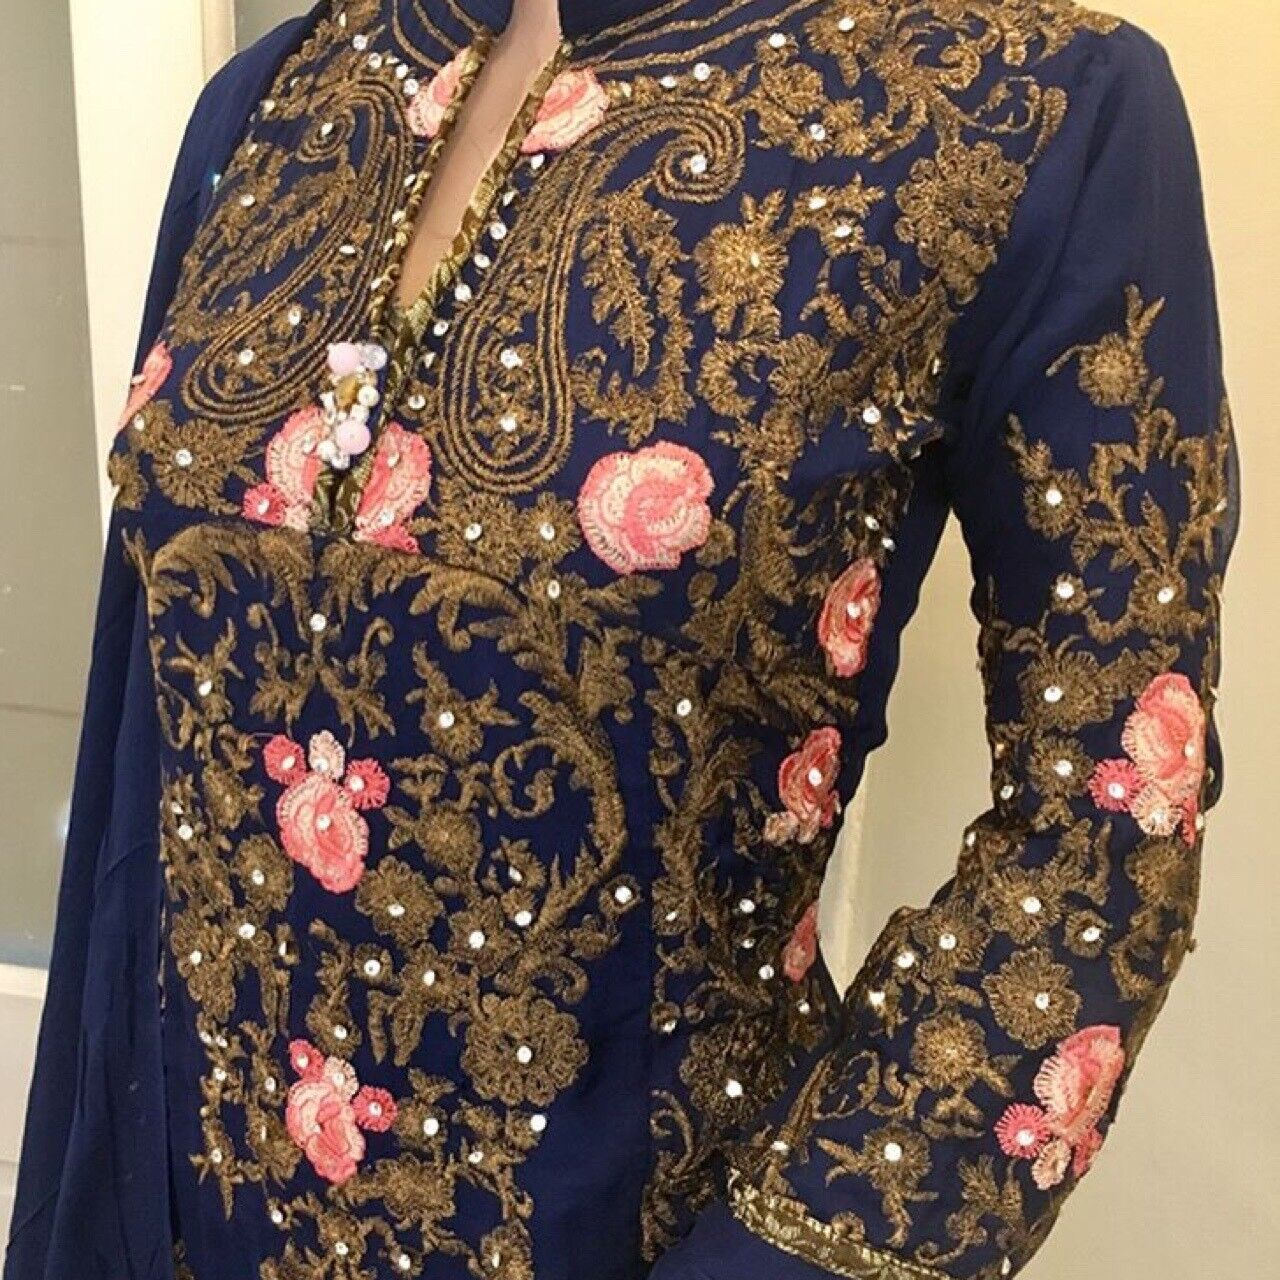 Rafia Inspired Navy bluee Embroidered Dress Shalwaar Kameez Size Small BNWT Golu